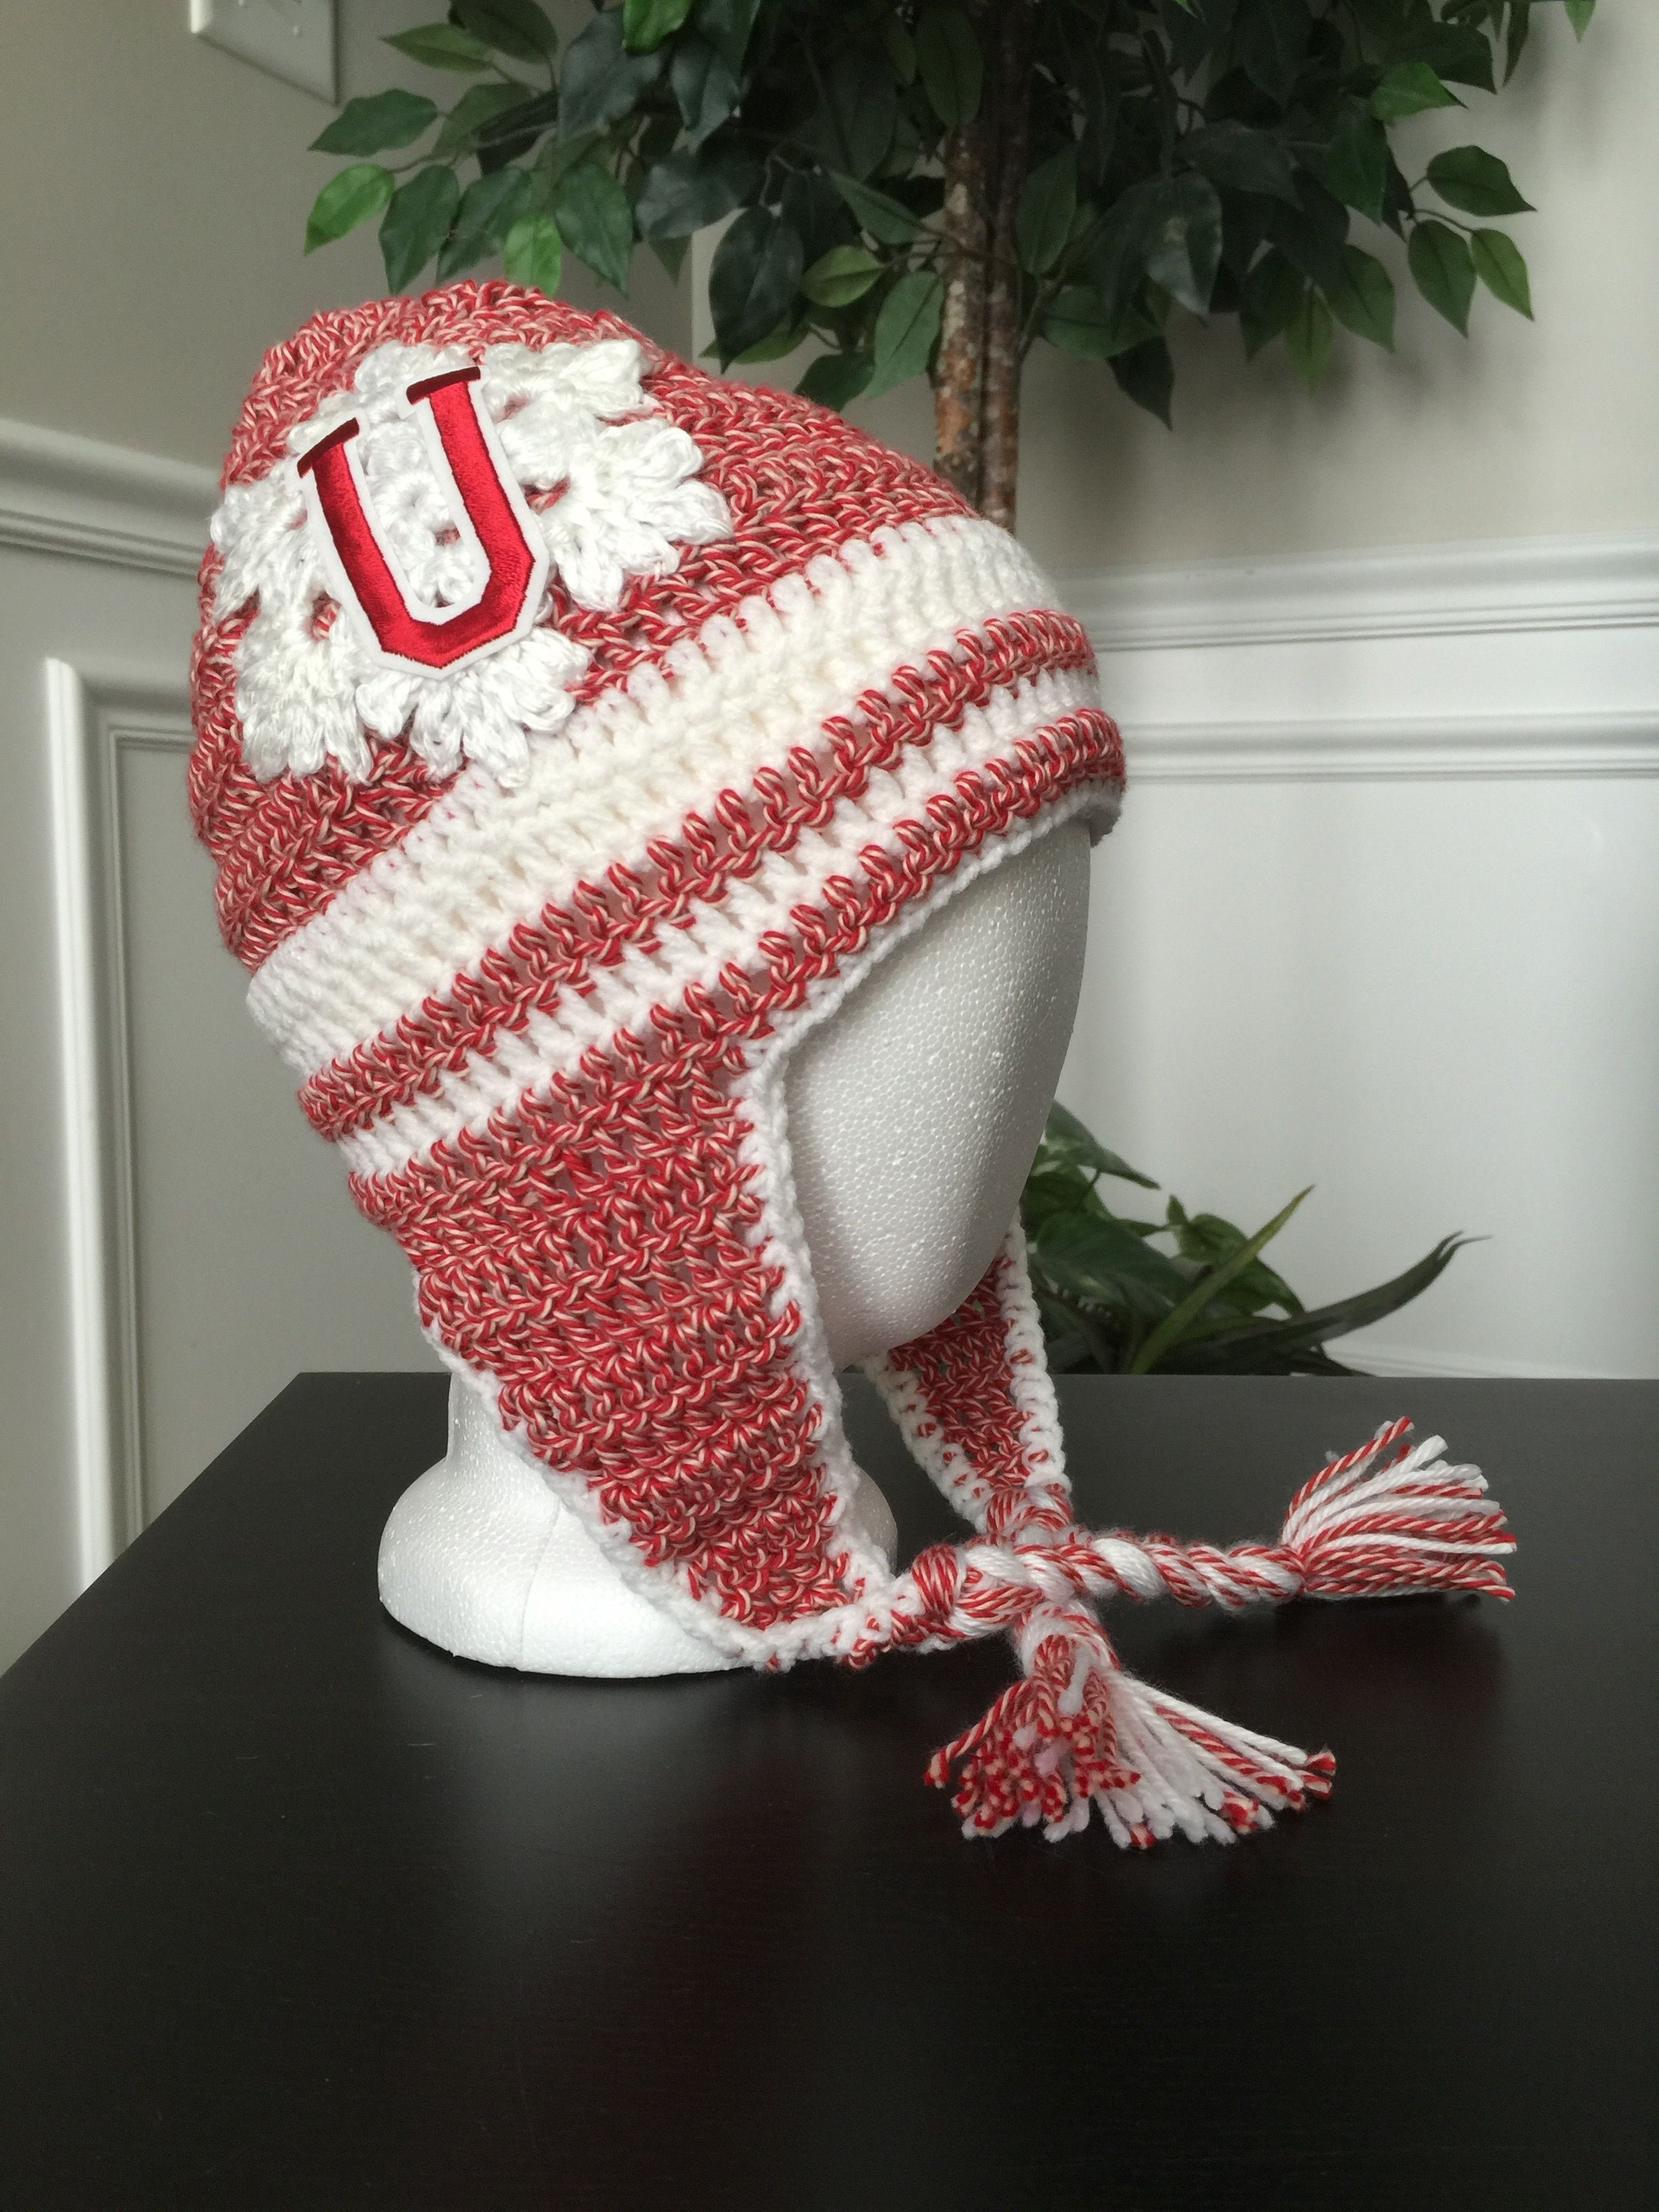 Crocheted Red and White University Of Utah Beanie with White Snowflake.